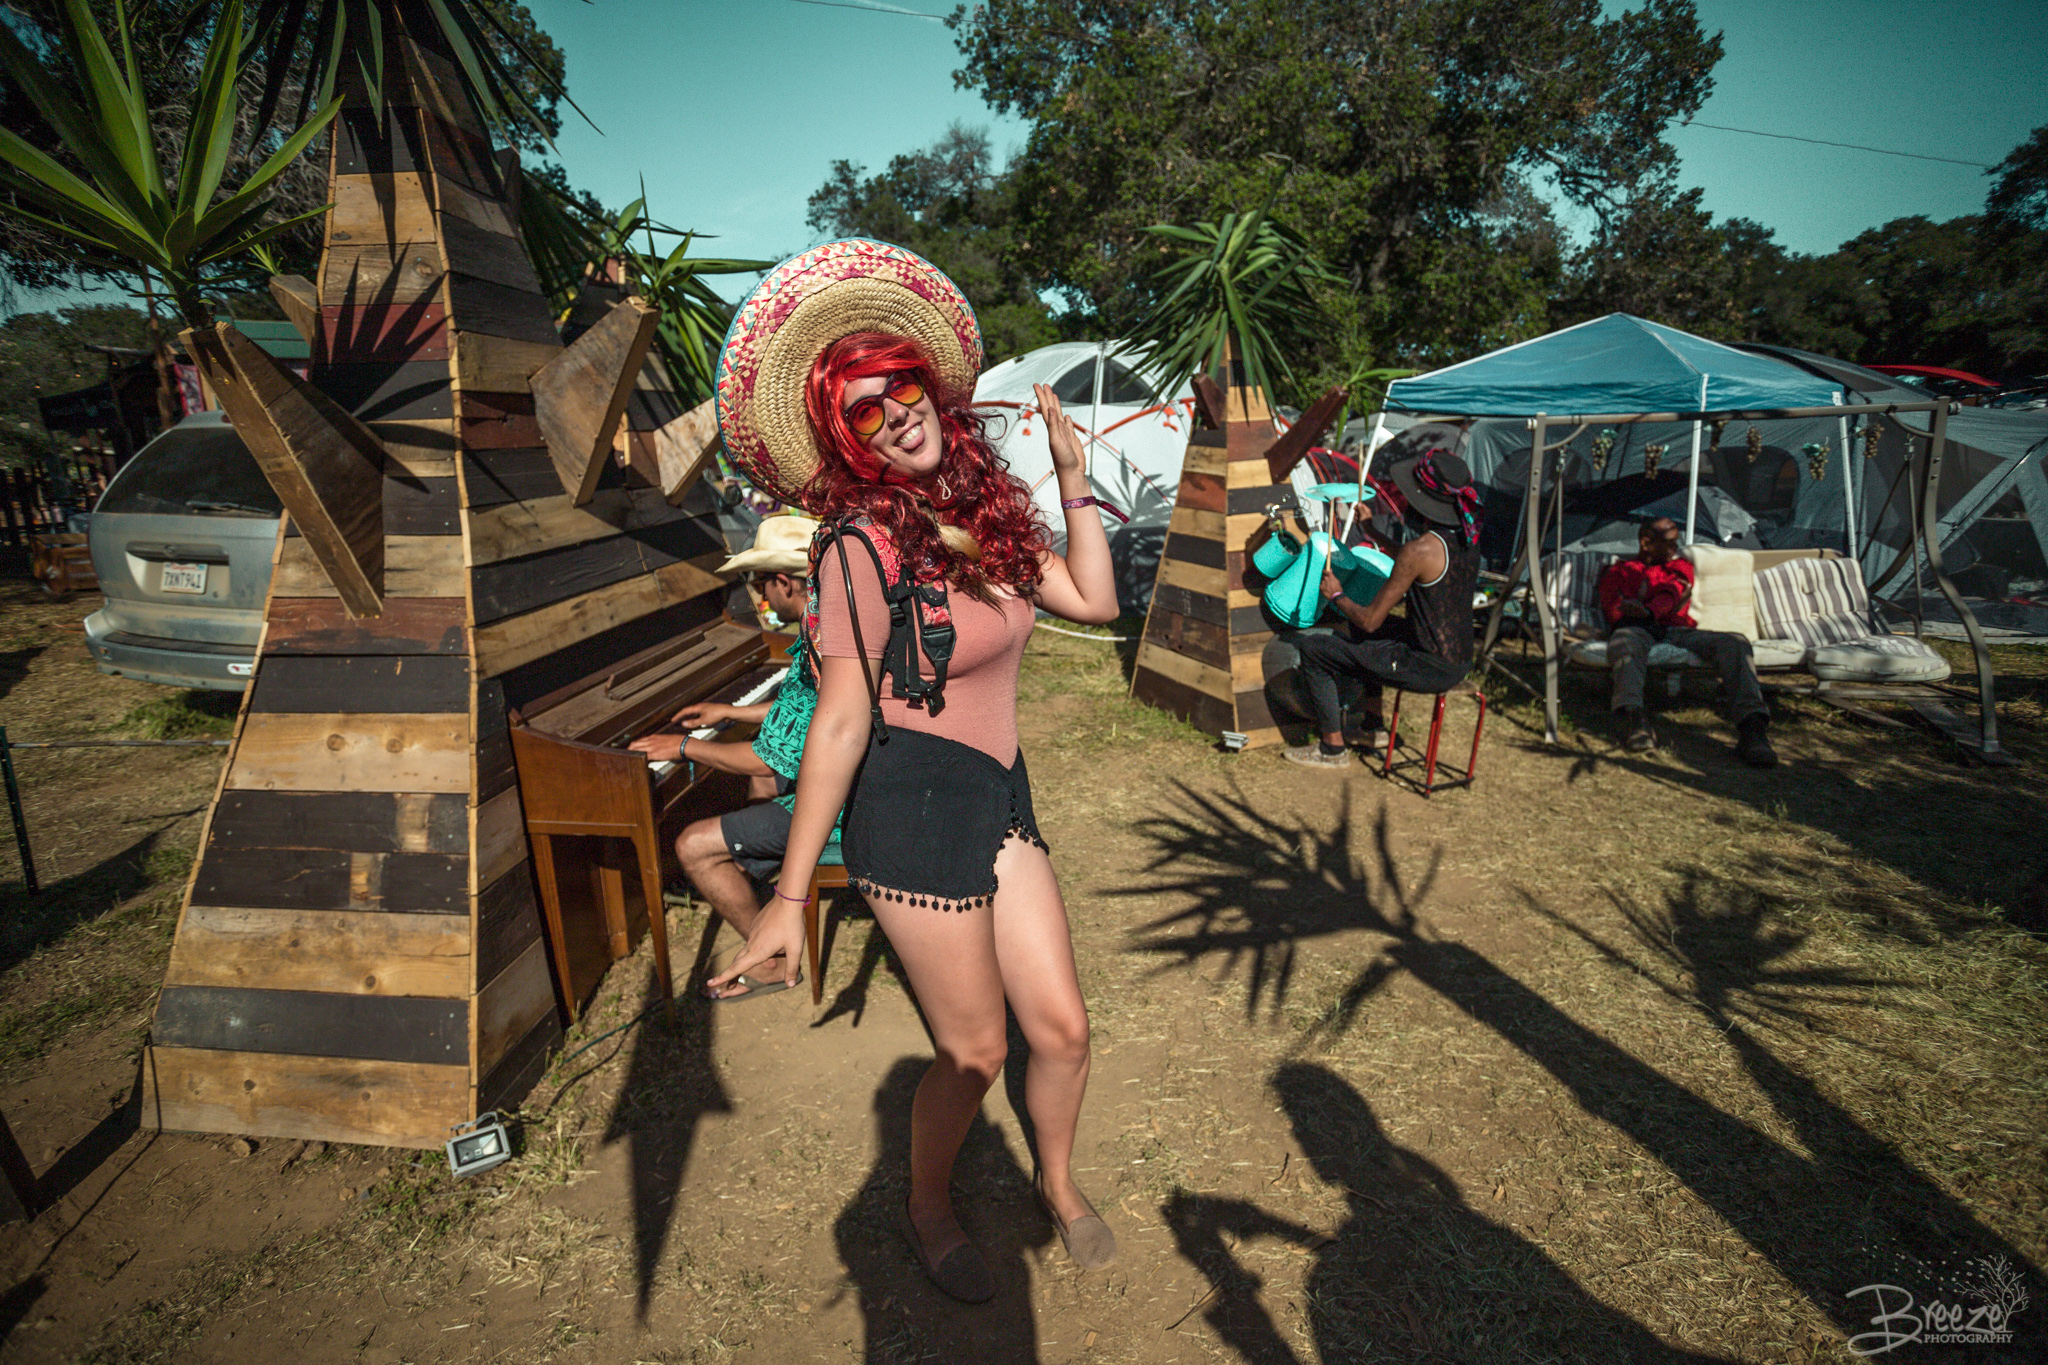 Lucidity.Festival.2019.Brie'Ana Breeze Photography and Media-6925.jpg